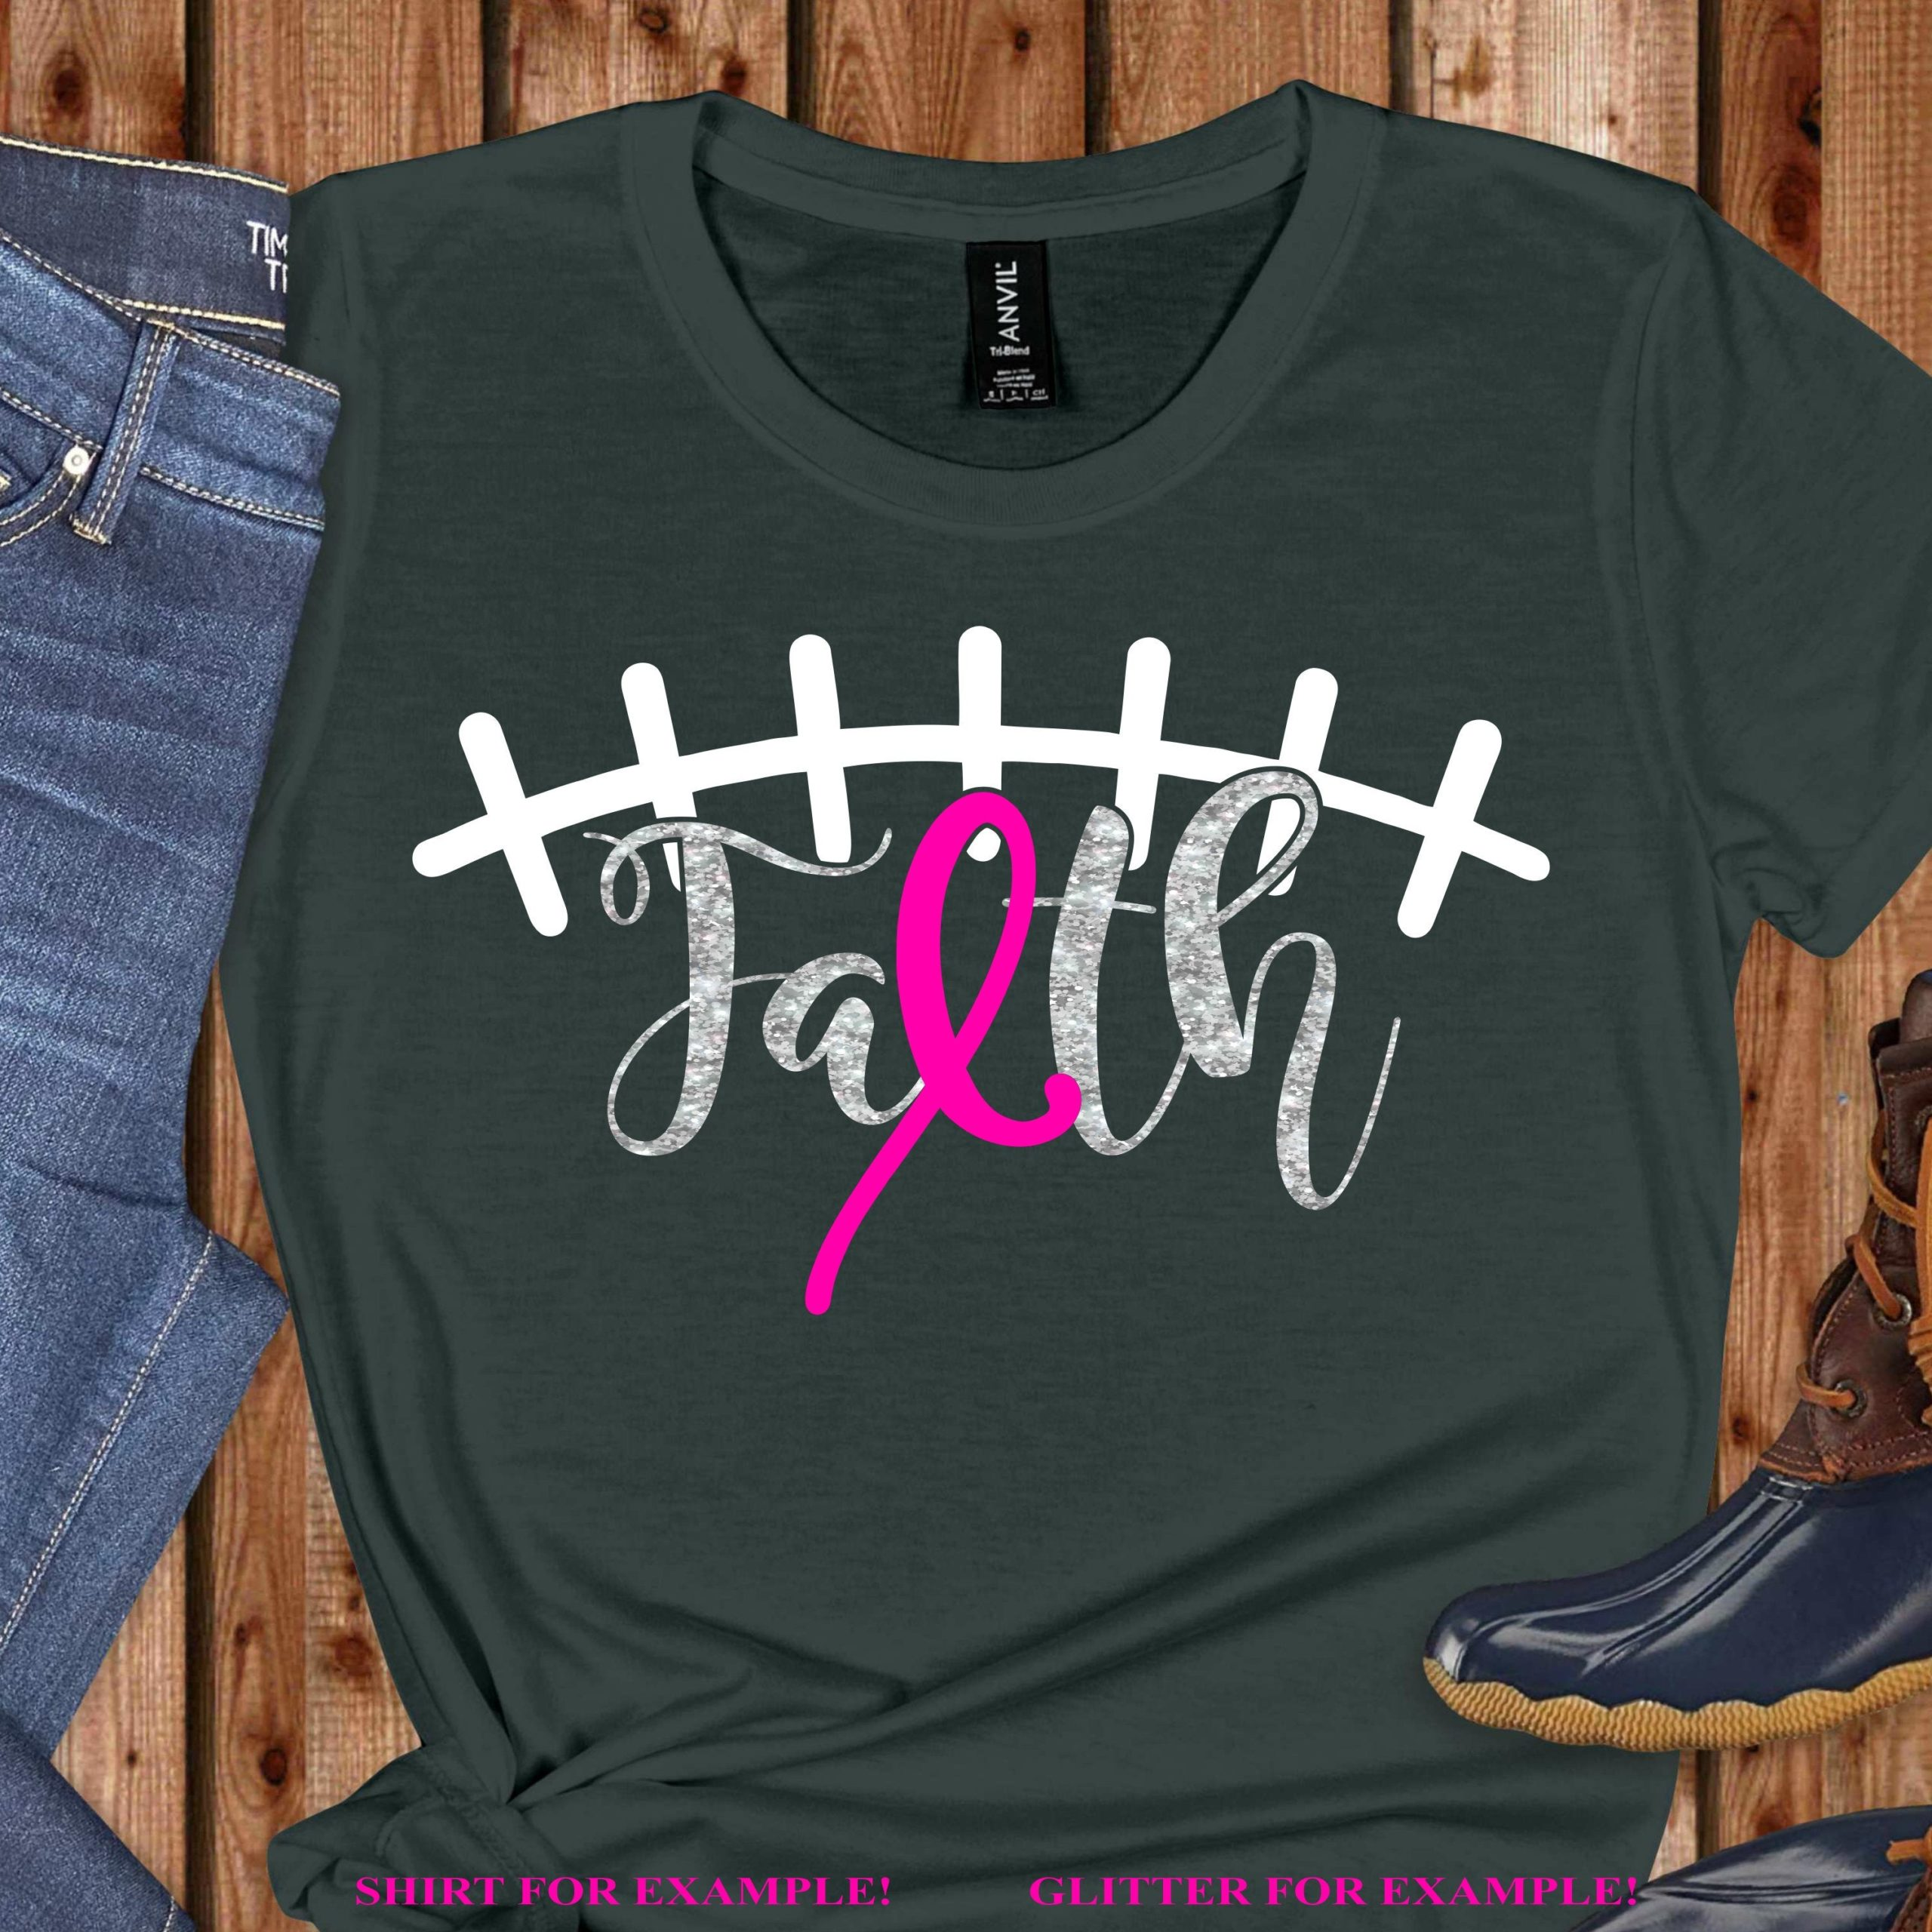 Foootball-svg-football-lace-svg-cancer-svg-awareness-svg-cancer-ribbon-svg-tshirt-svgsurvivor-svg-svg-for-cricut-silhouette-cut-file-5ef791ea